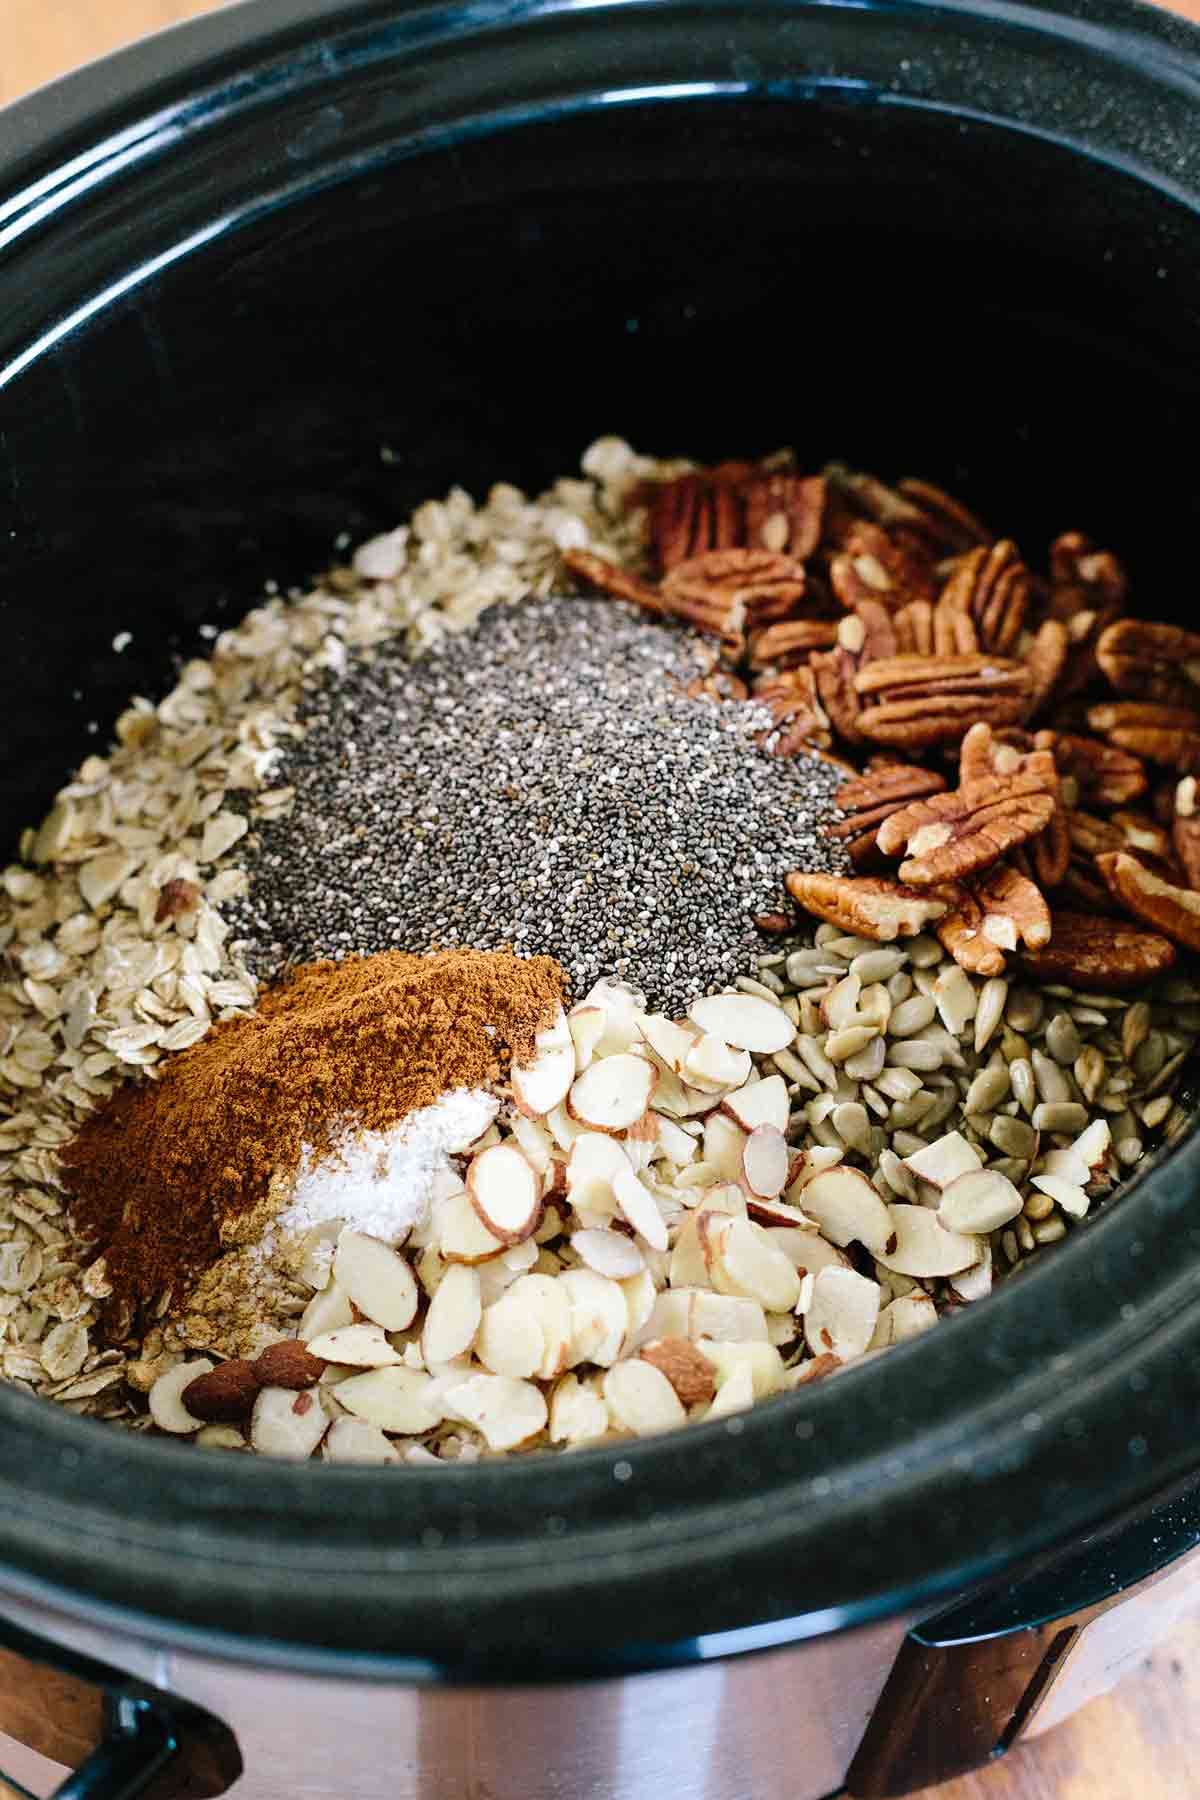 Crock Pot loaded with ingredients for homemade granola